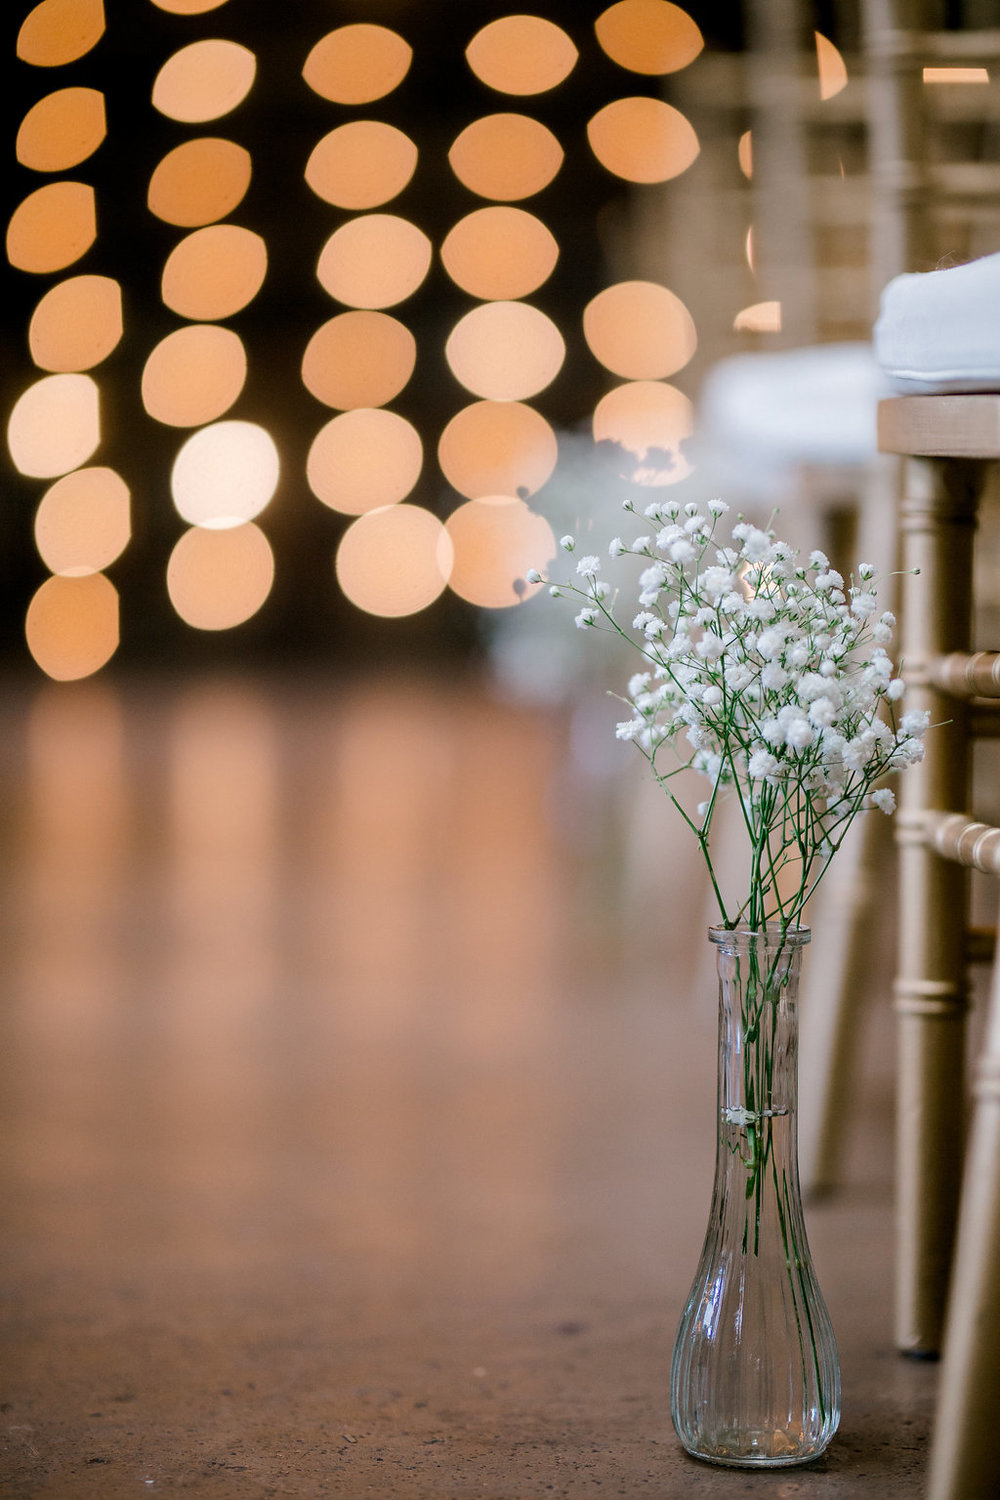 savannah-bridal-shop-i-and-b-florals-sonya-and-josh-colorful-rustic-boho-wedding-florals-at-soho-south-cafe-savannah-ga-wedding-danielle-george-photography-23.JPG